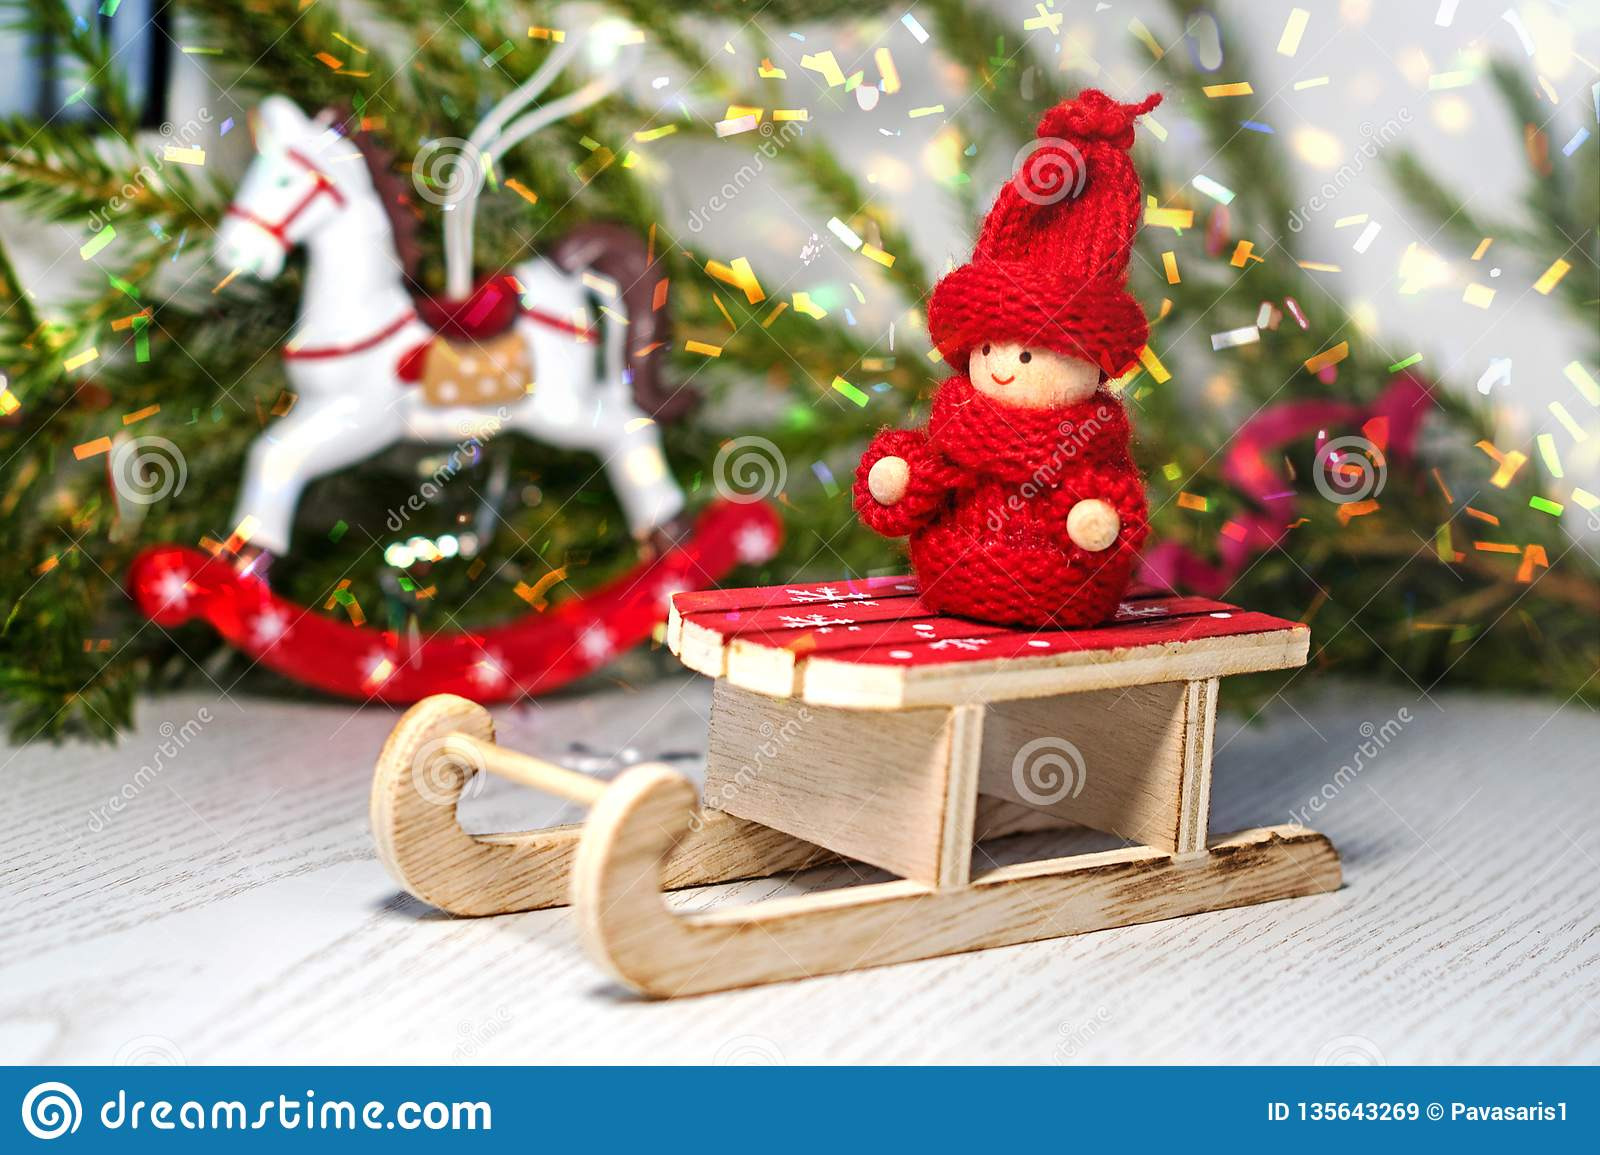 460 Christmas Sleigh Horse Photos Free Royalty Free Stock Photos From Dreamstime